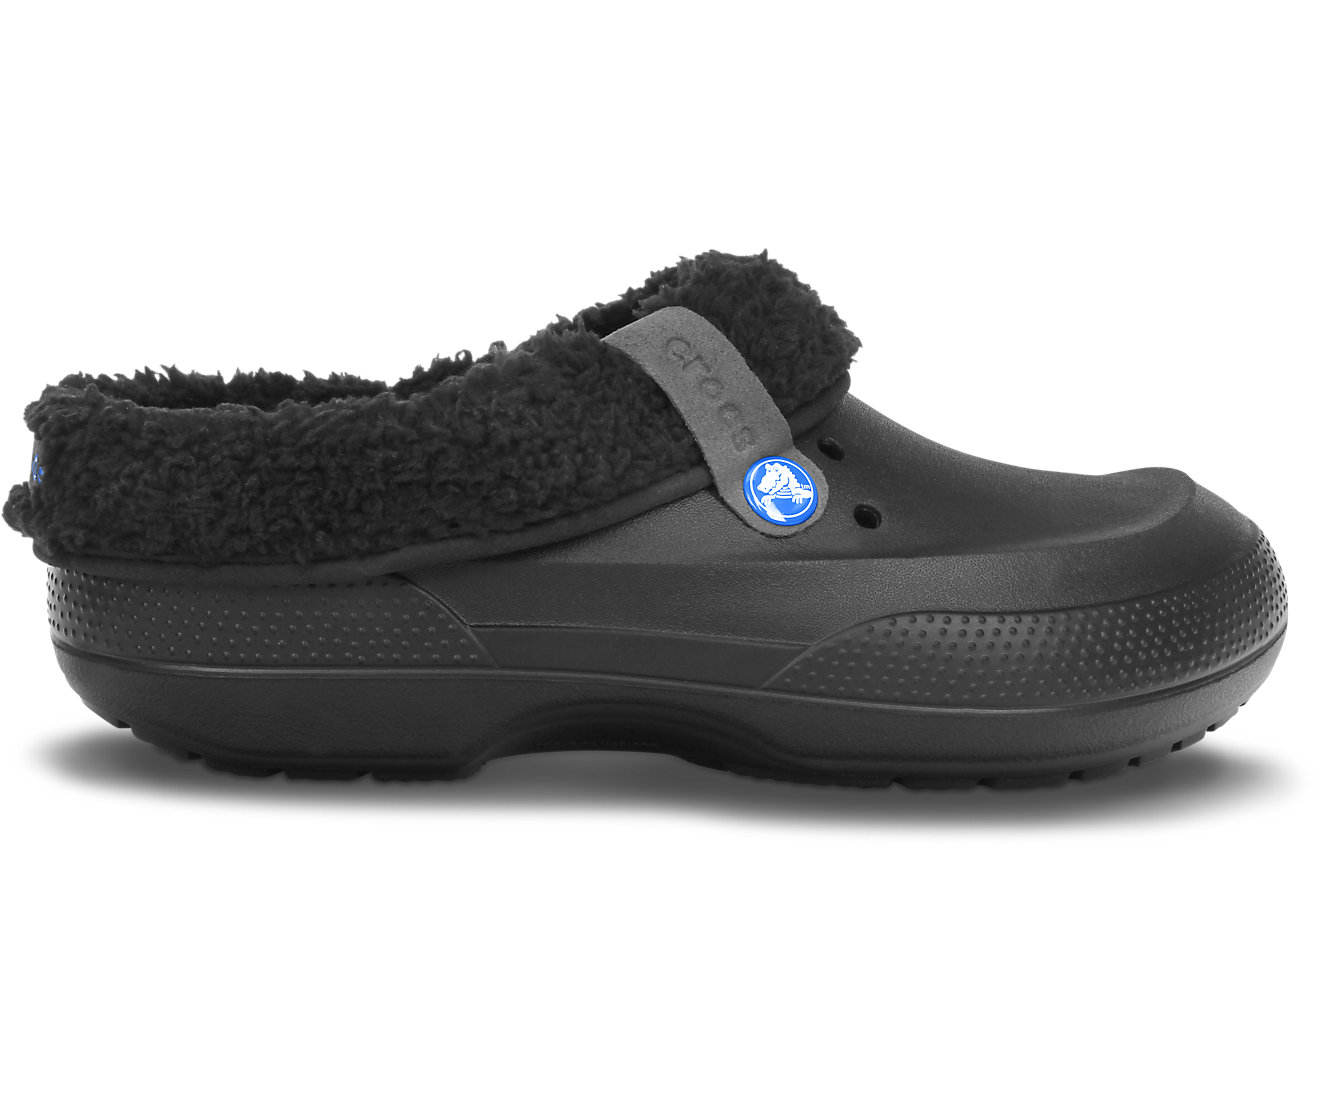 2e95aed21 Get Crocs comfort all year-round. The second-generation Blitzen has a  sleeker